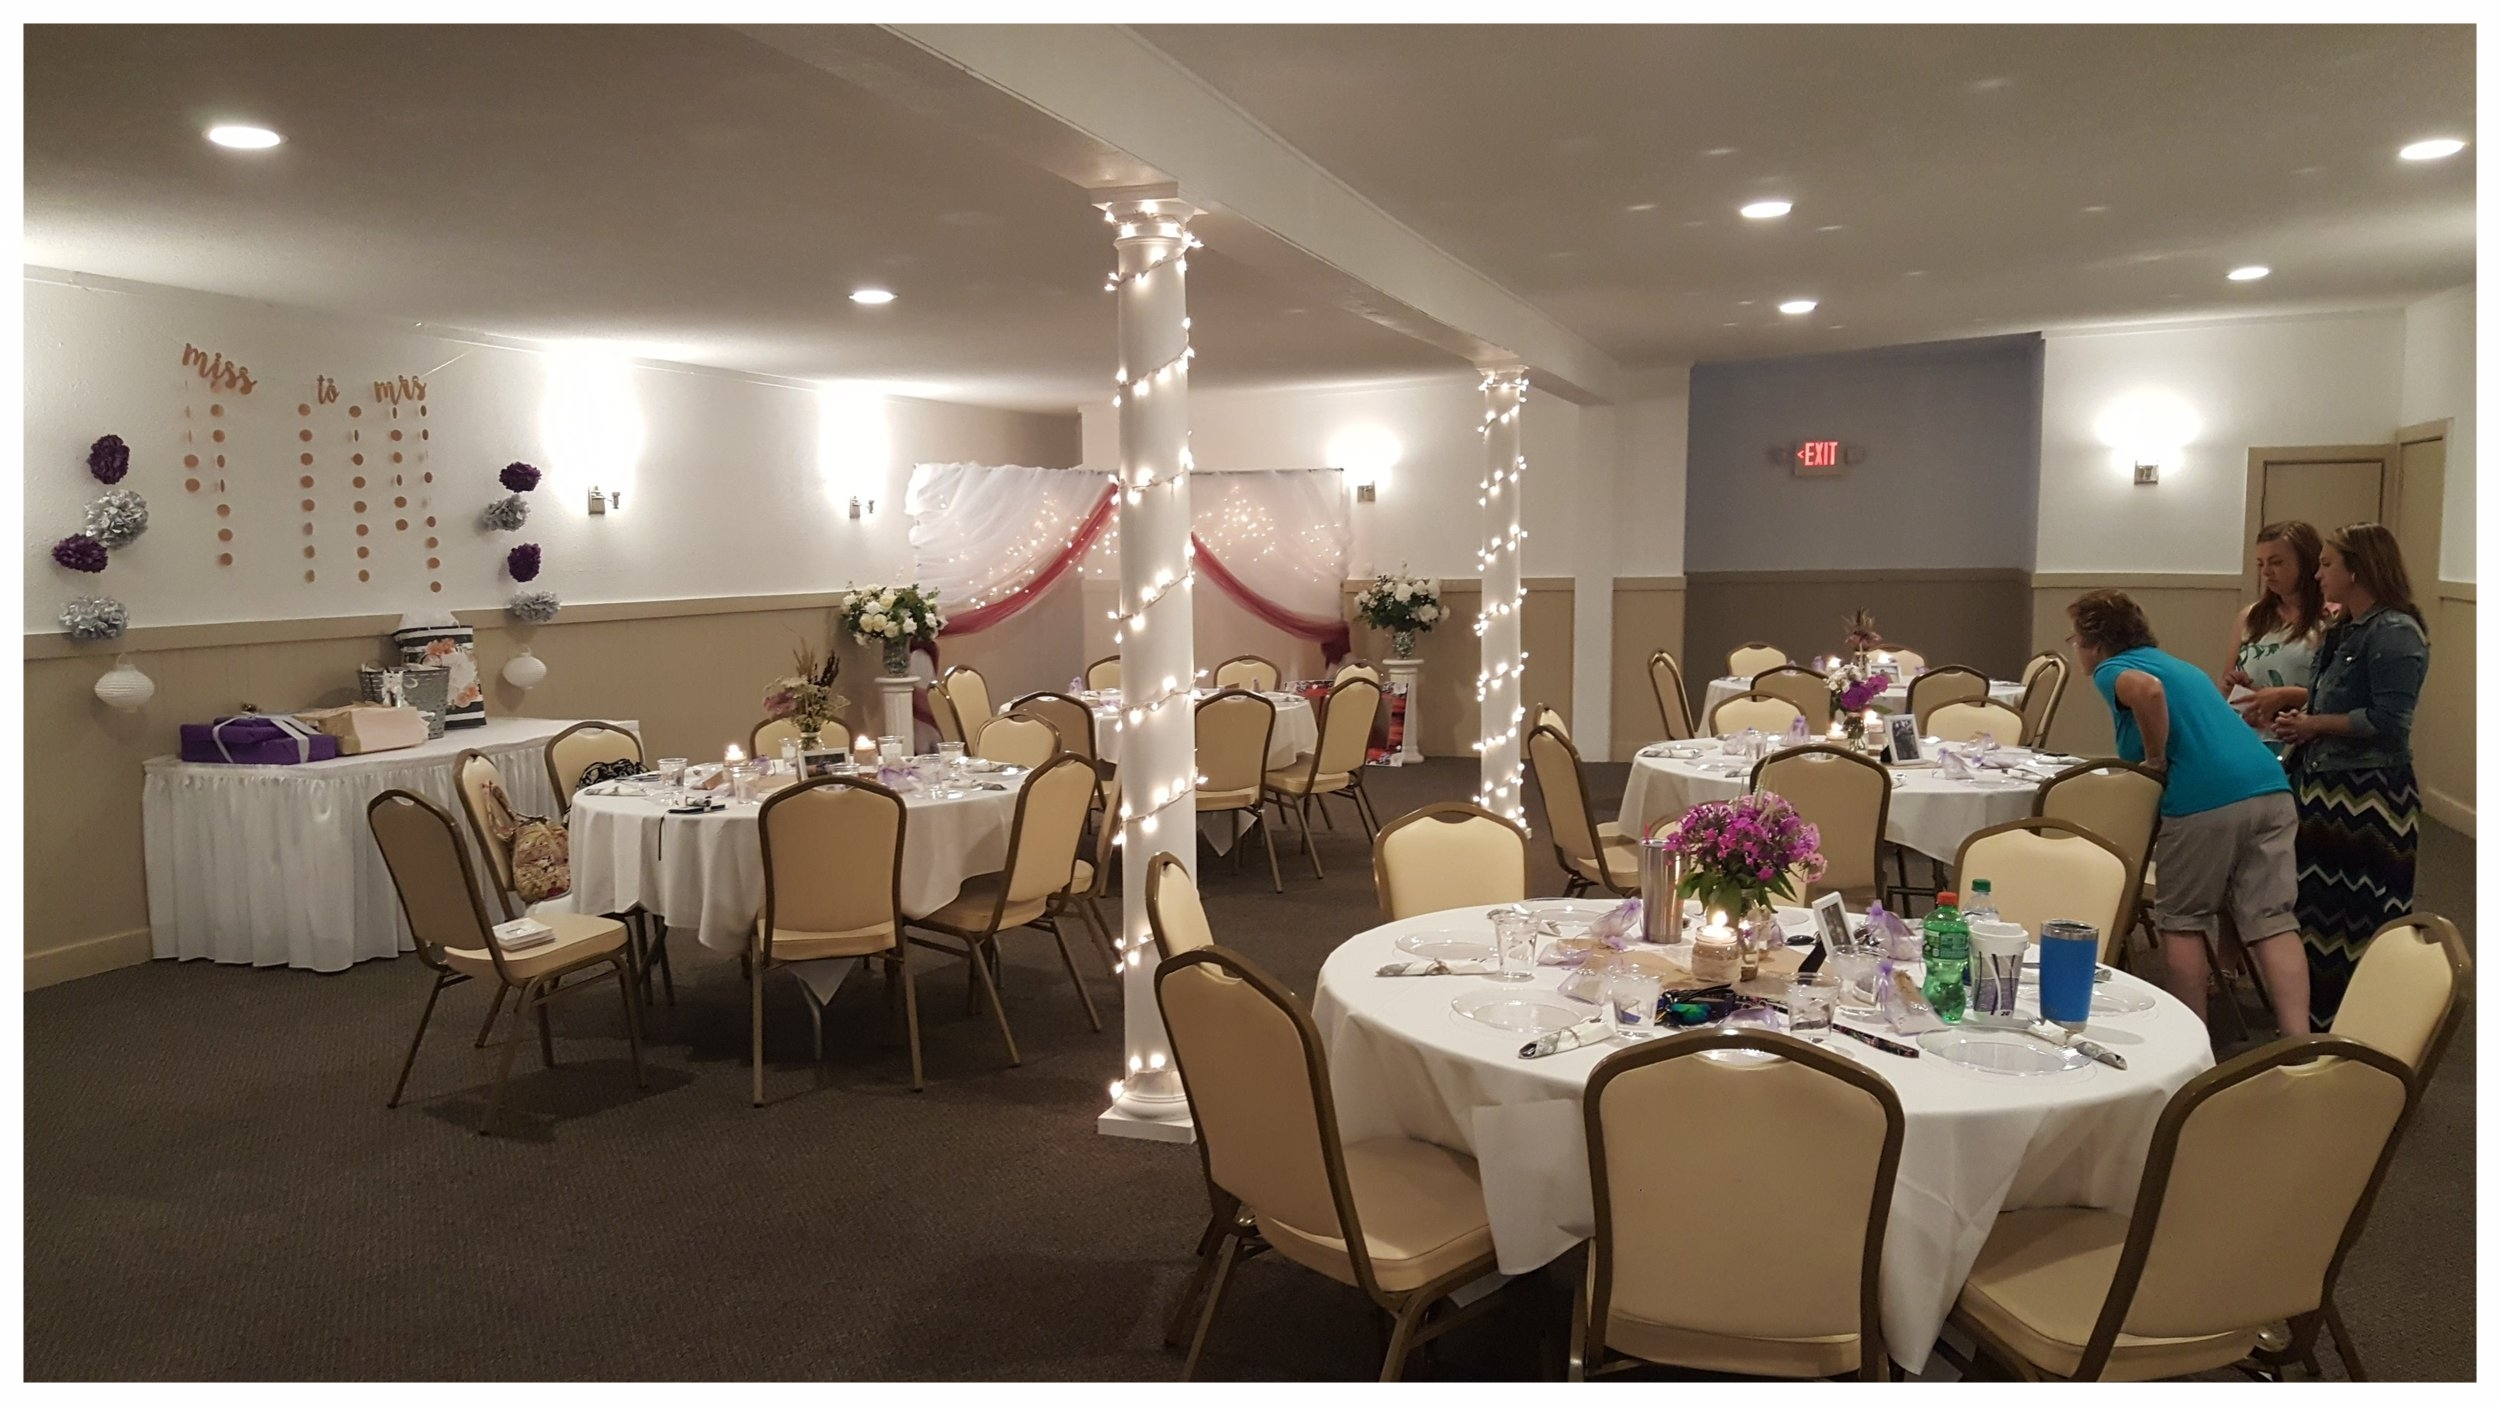 The Starlight Room - This delightful room features an expanded dance floor and a fresh look! The Starlight Room can entertain up to 120 guests for dinner. A portable bar is available for use in this room as well.